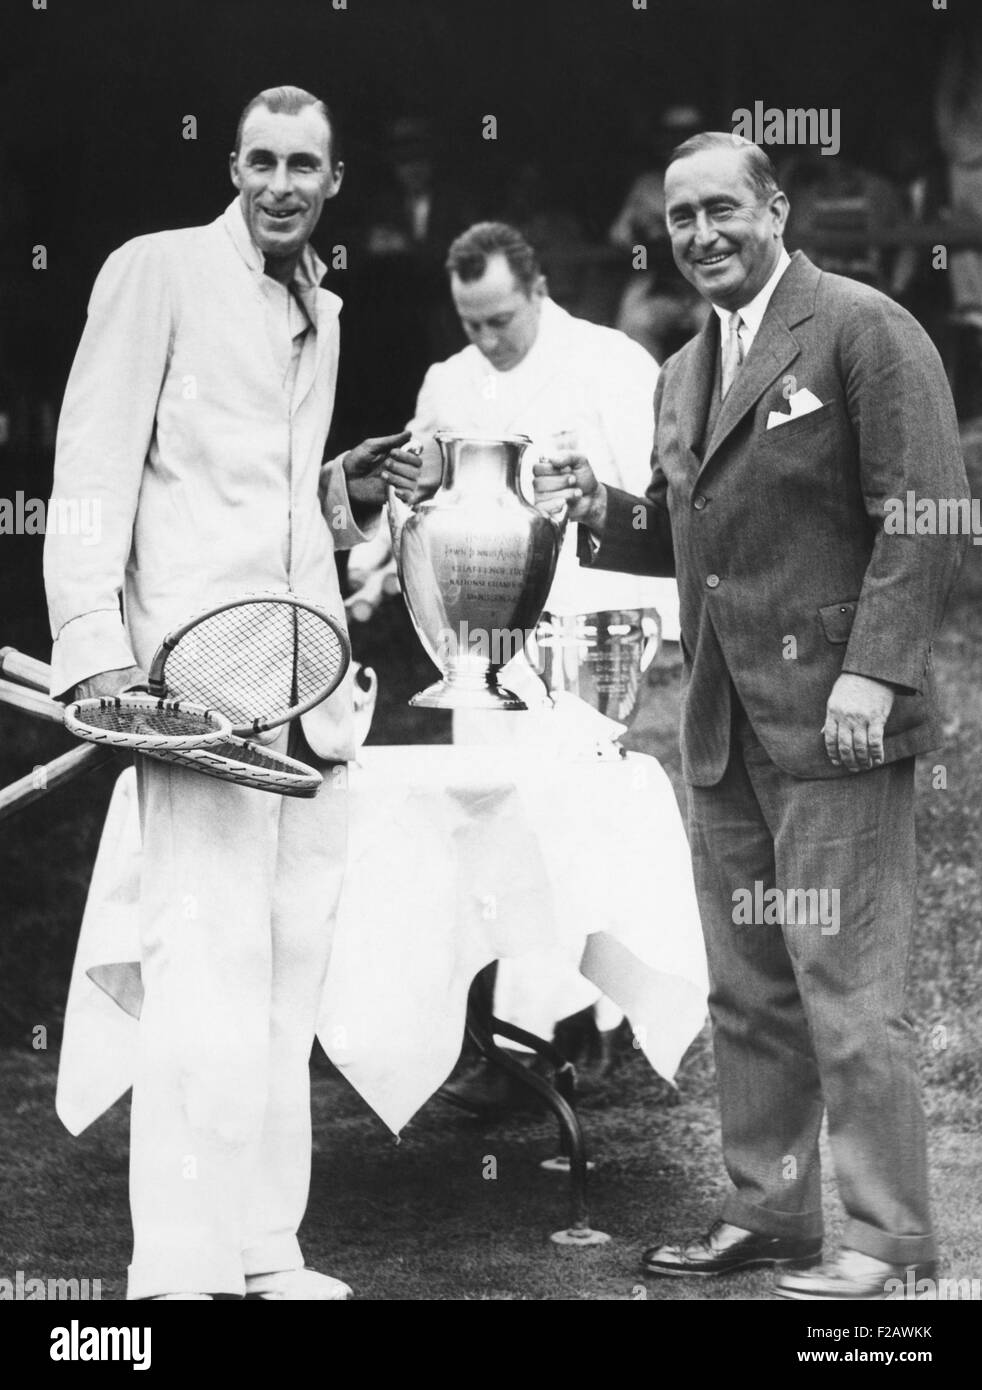 Bill Tilden receives trophy from Samuel Collum, after he won the Men's Singles Championship. Sept 15, 1929. - Stock Image